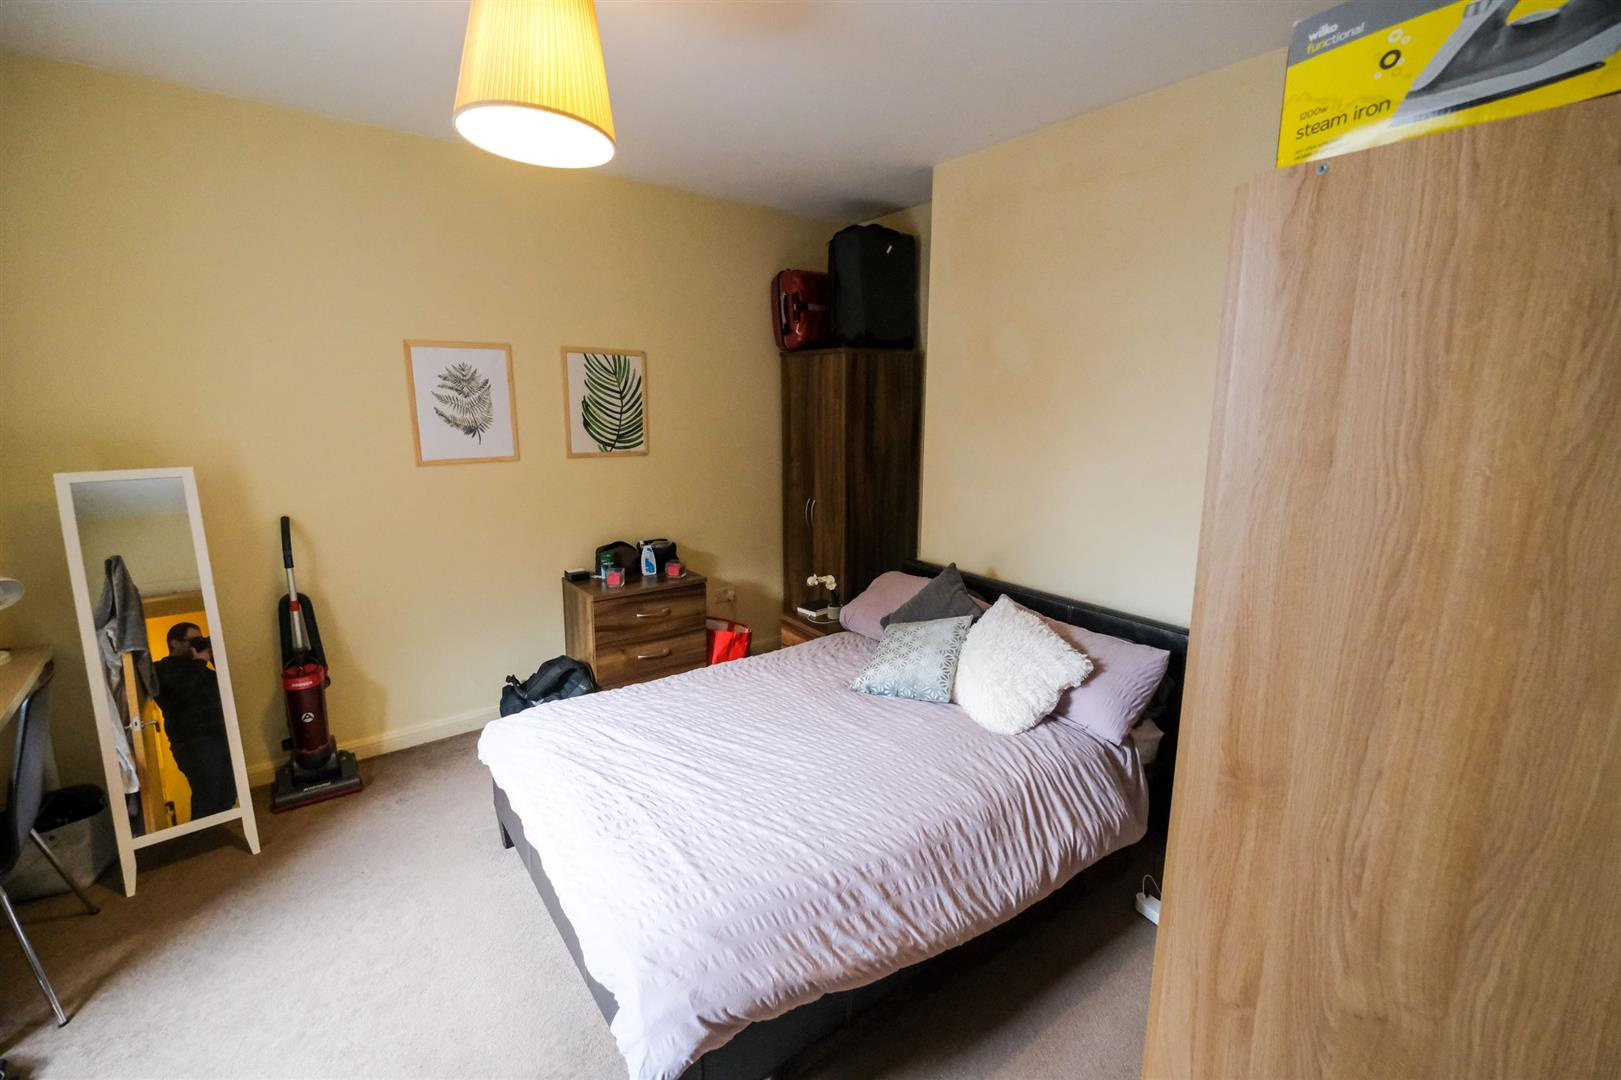 1 room in Fulham, London, SW6 1AJ RoomsLocal image